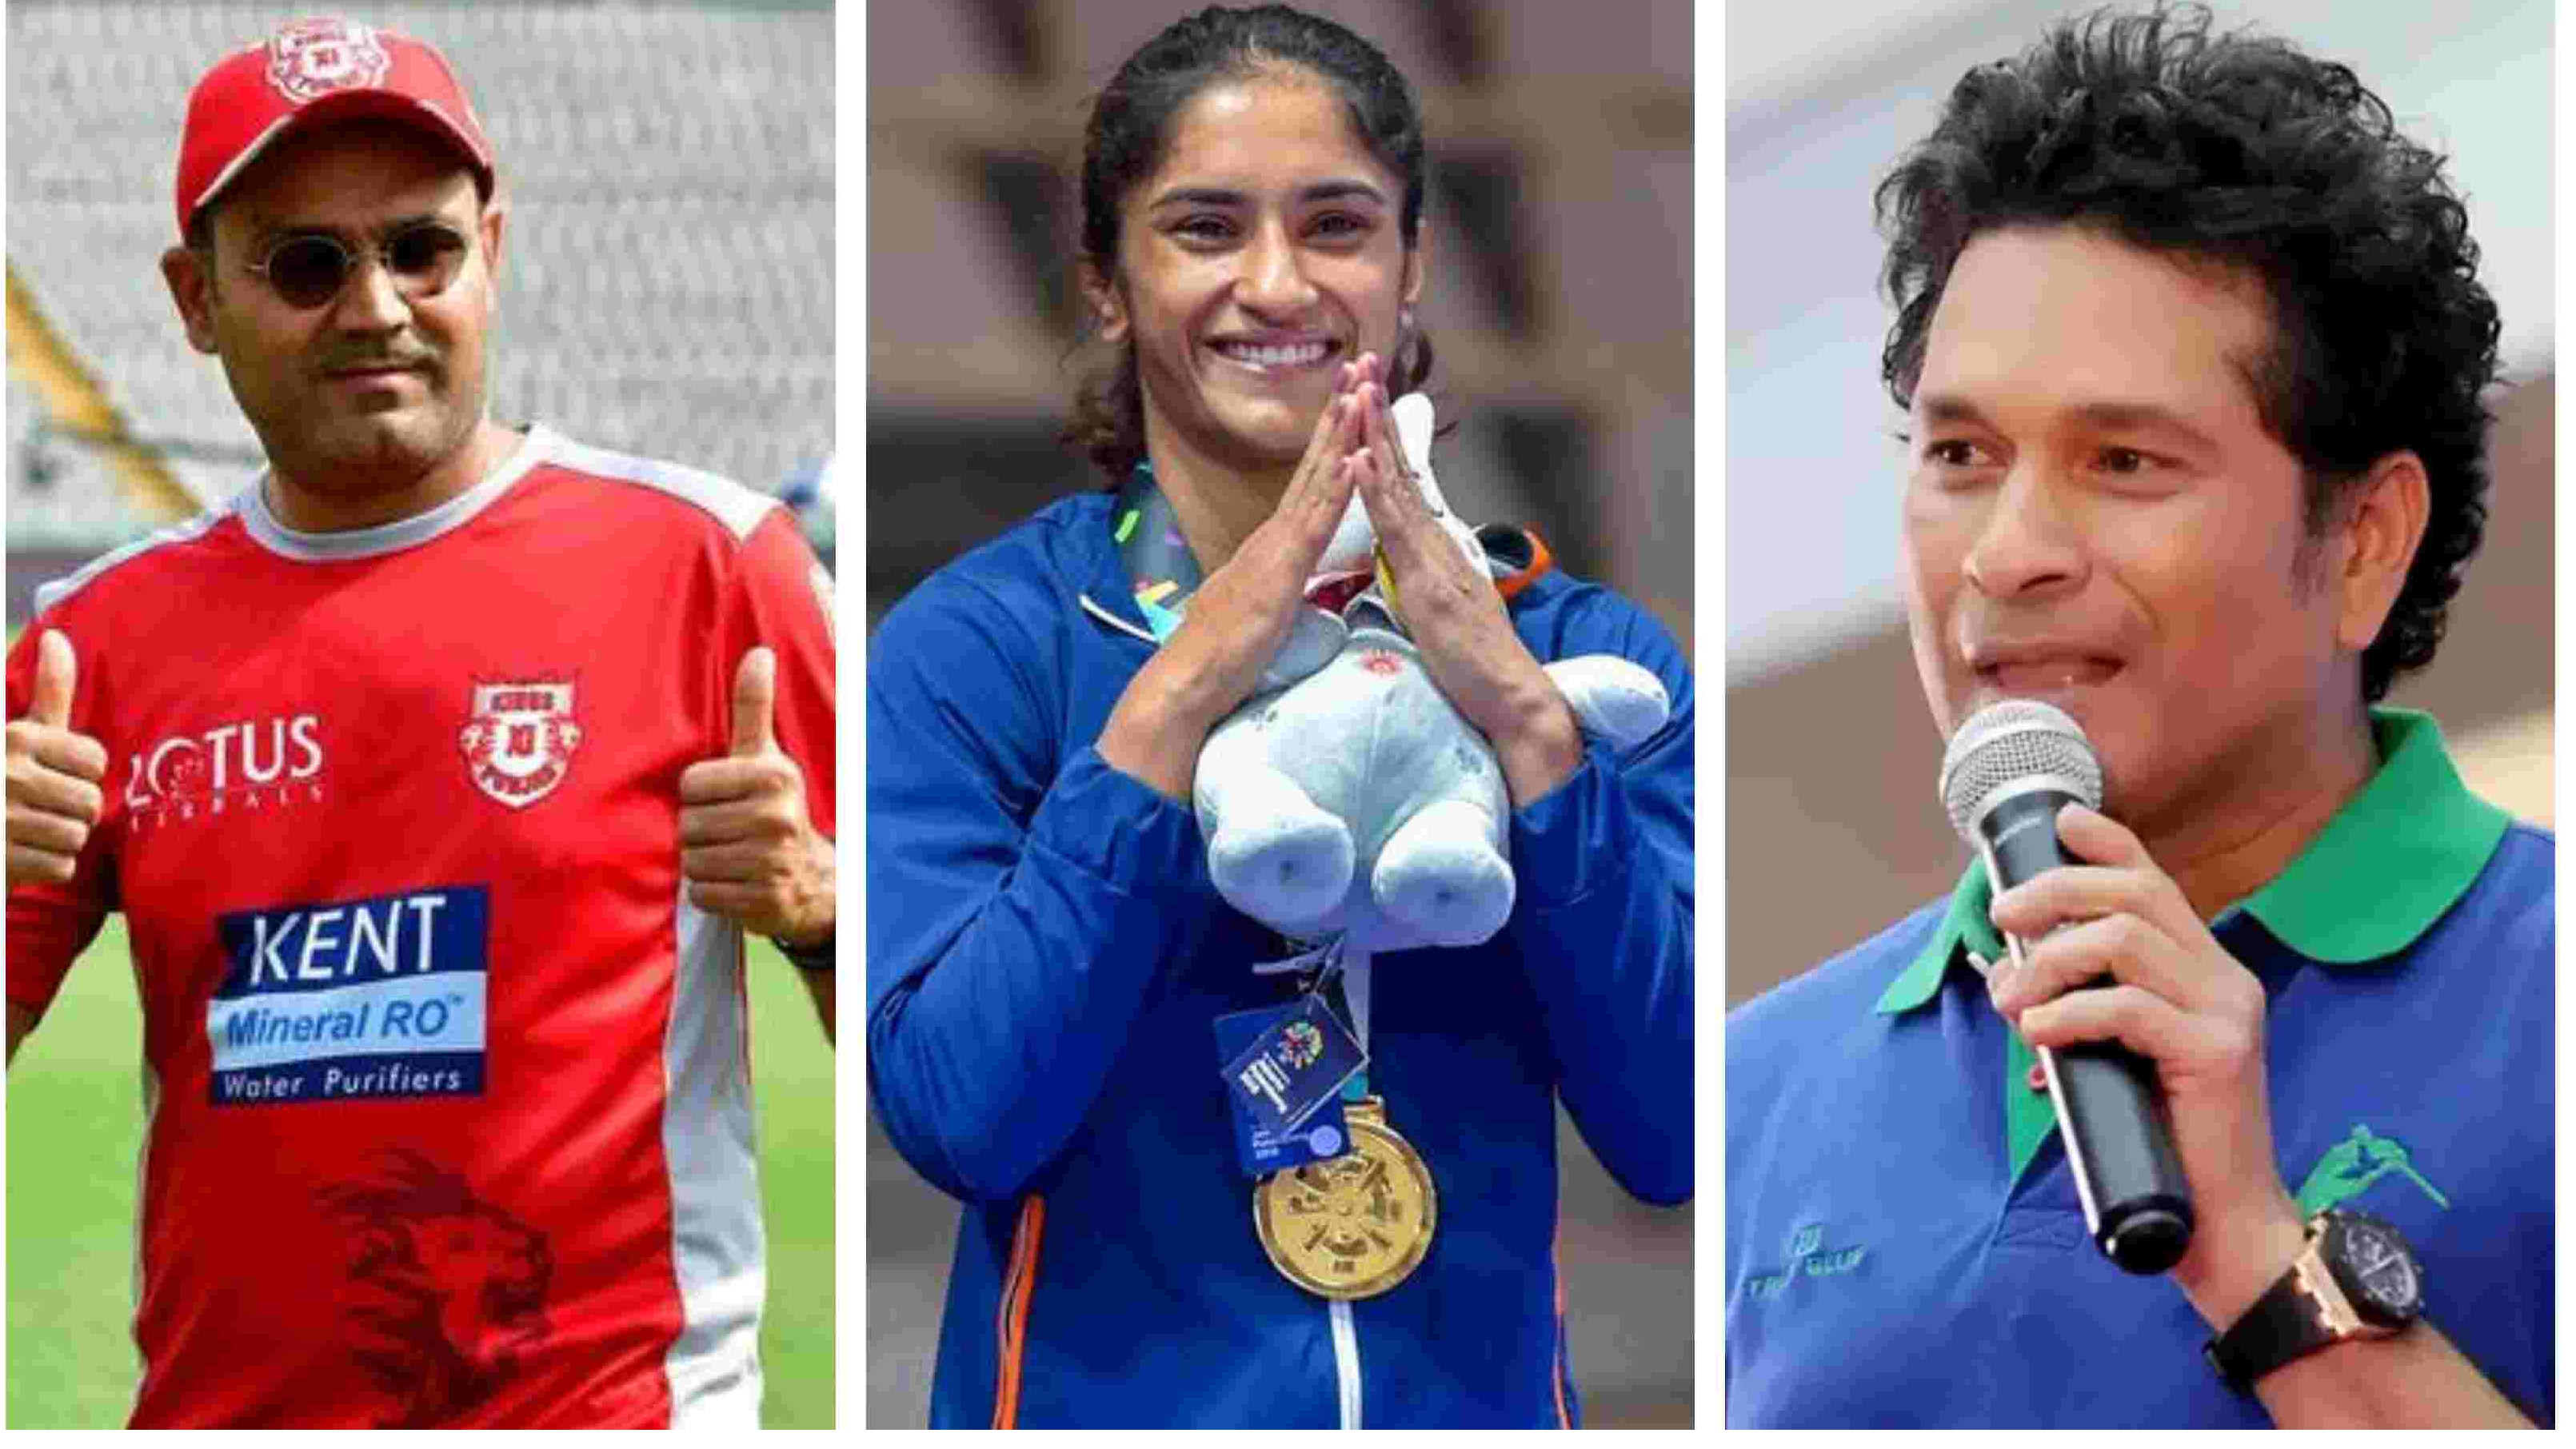 Cricket fraternity laud Vinesh Phogat as she became first Indian woman wrestler to win gold medal in Asian Games